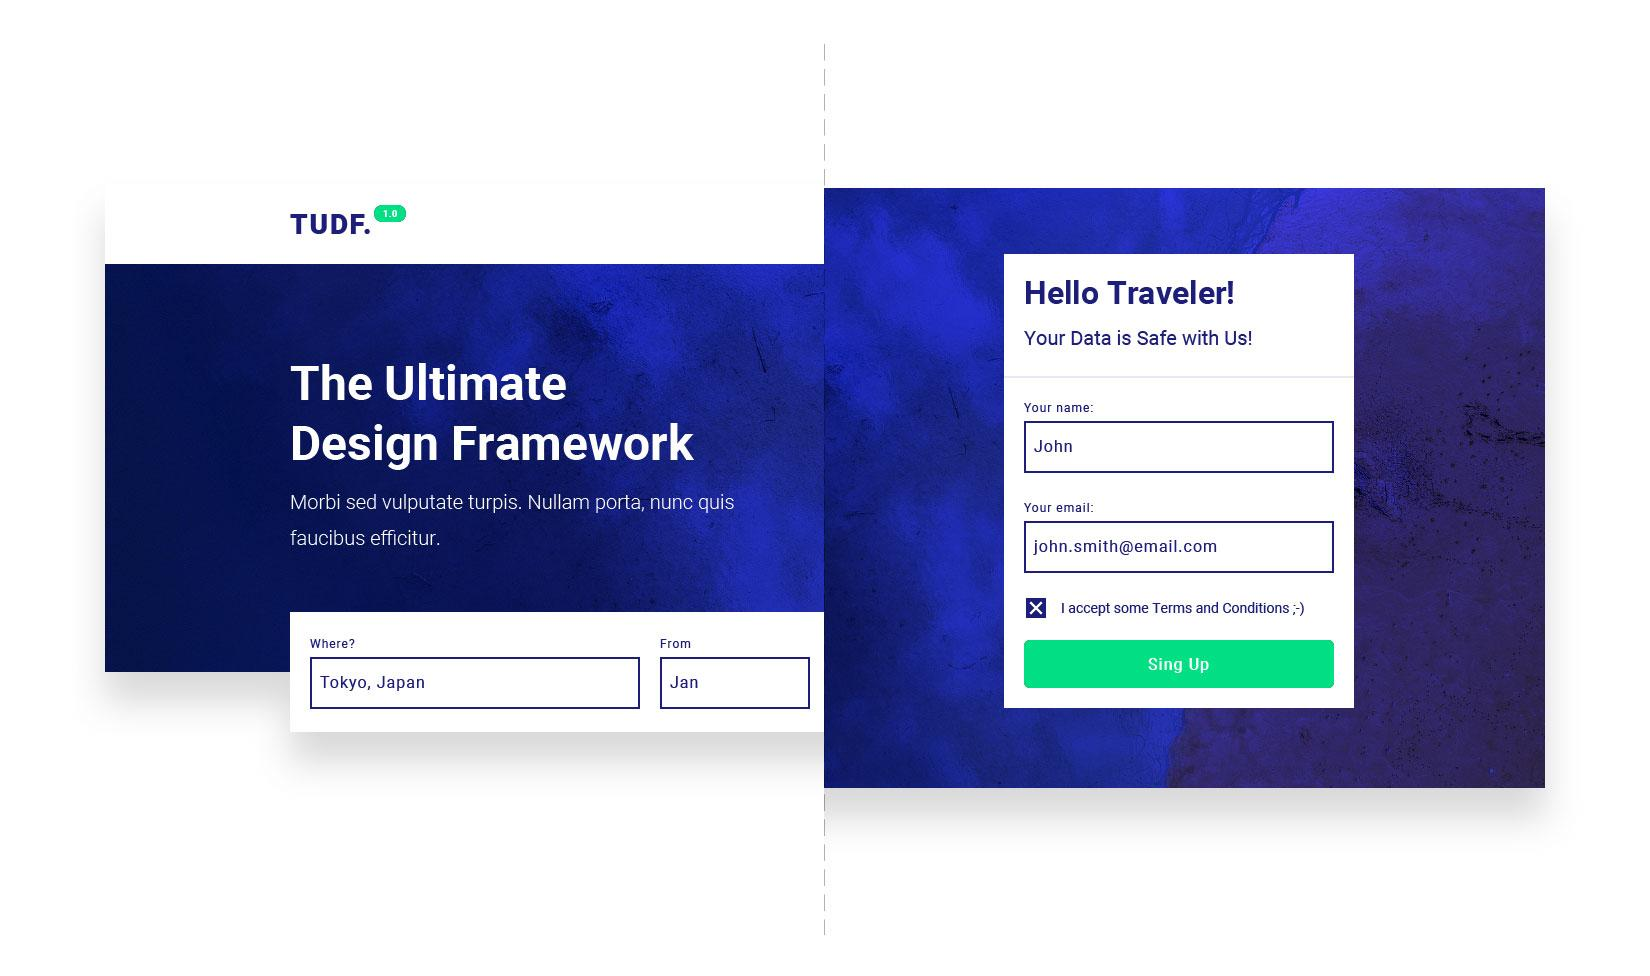 Different website sections made from complex UI components for a UI design framework